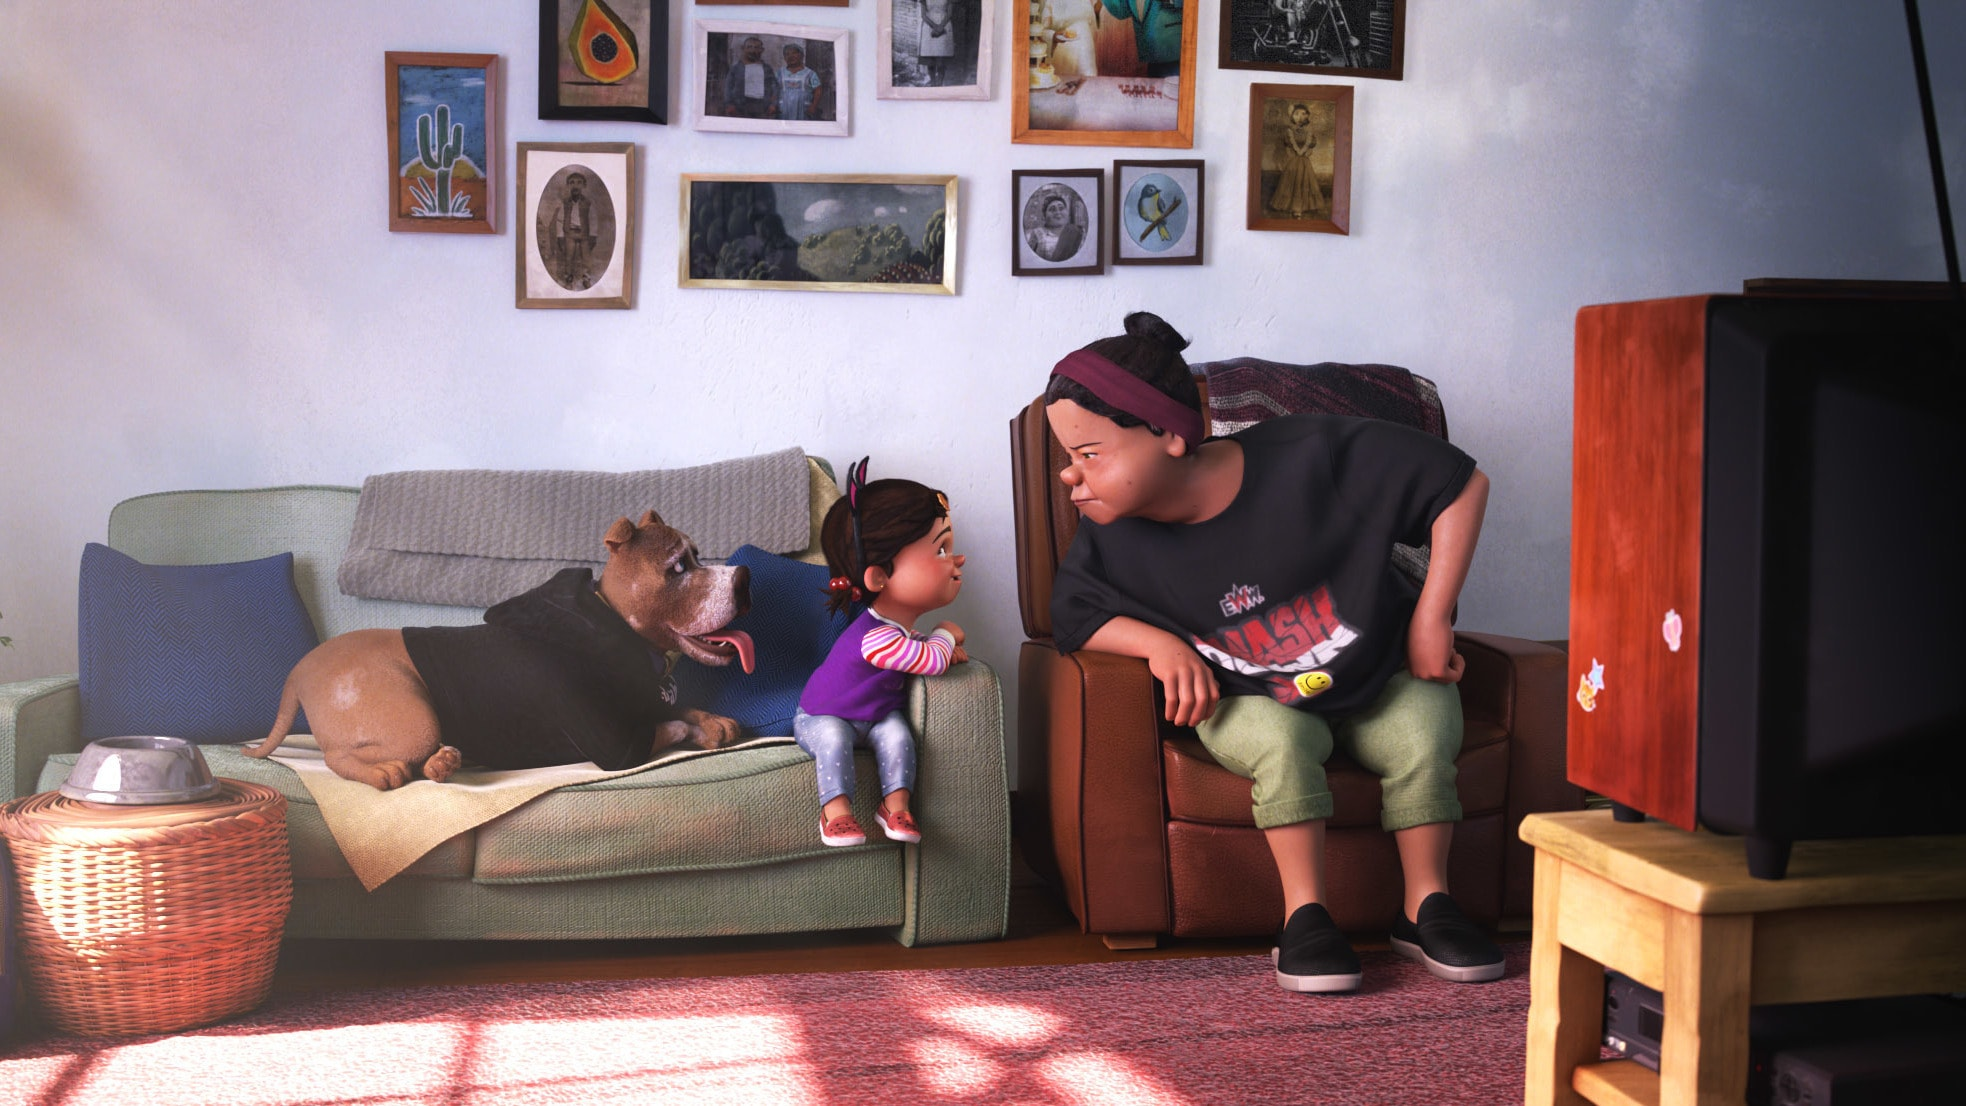 """In Pixar Animation Studios new SparkShort """"Nona,""""a grandmother's plan for a special day alone watching her favorite TV show, """"E.W.W. Smashdown Wrestling,"""" is upended by an unexpected visit from her granddaughter. Directed by Louis Gonzales and produced by Courtney Kent, """"Nona"""" launches on Disney+ on Sept. 17, 2021. © 2021 Disney/Pixar. All Rights Reserved."""